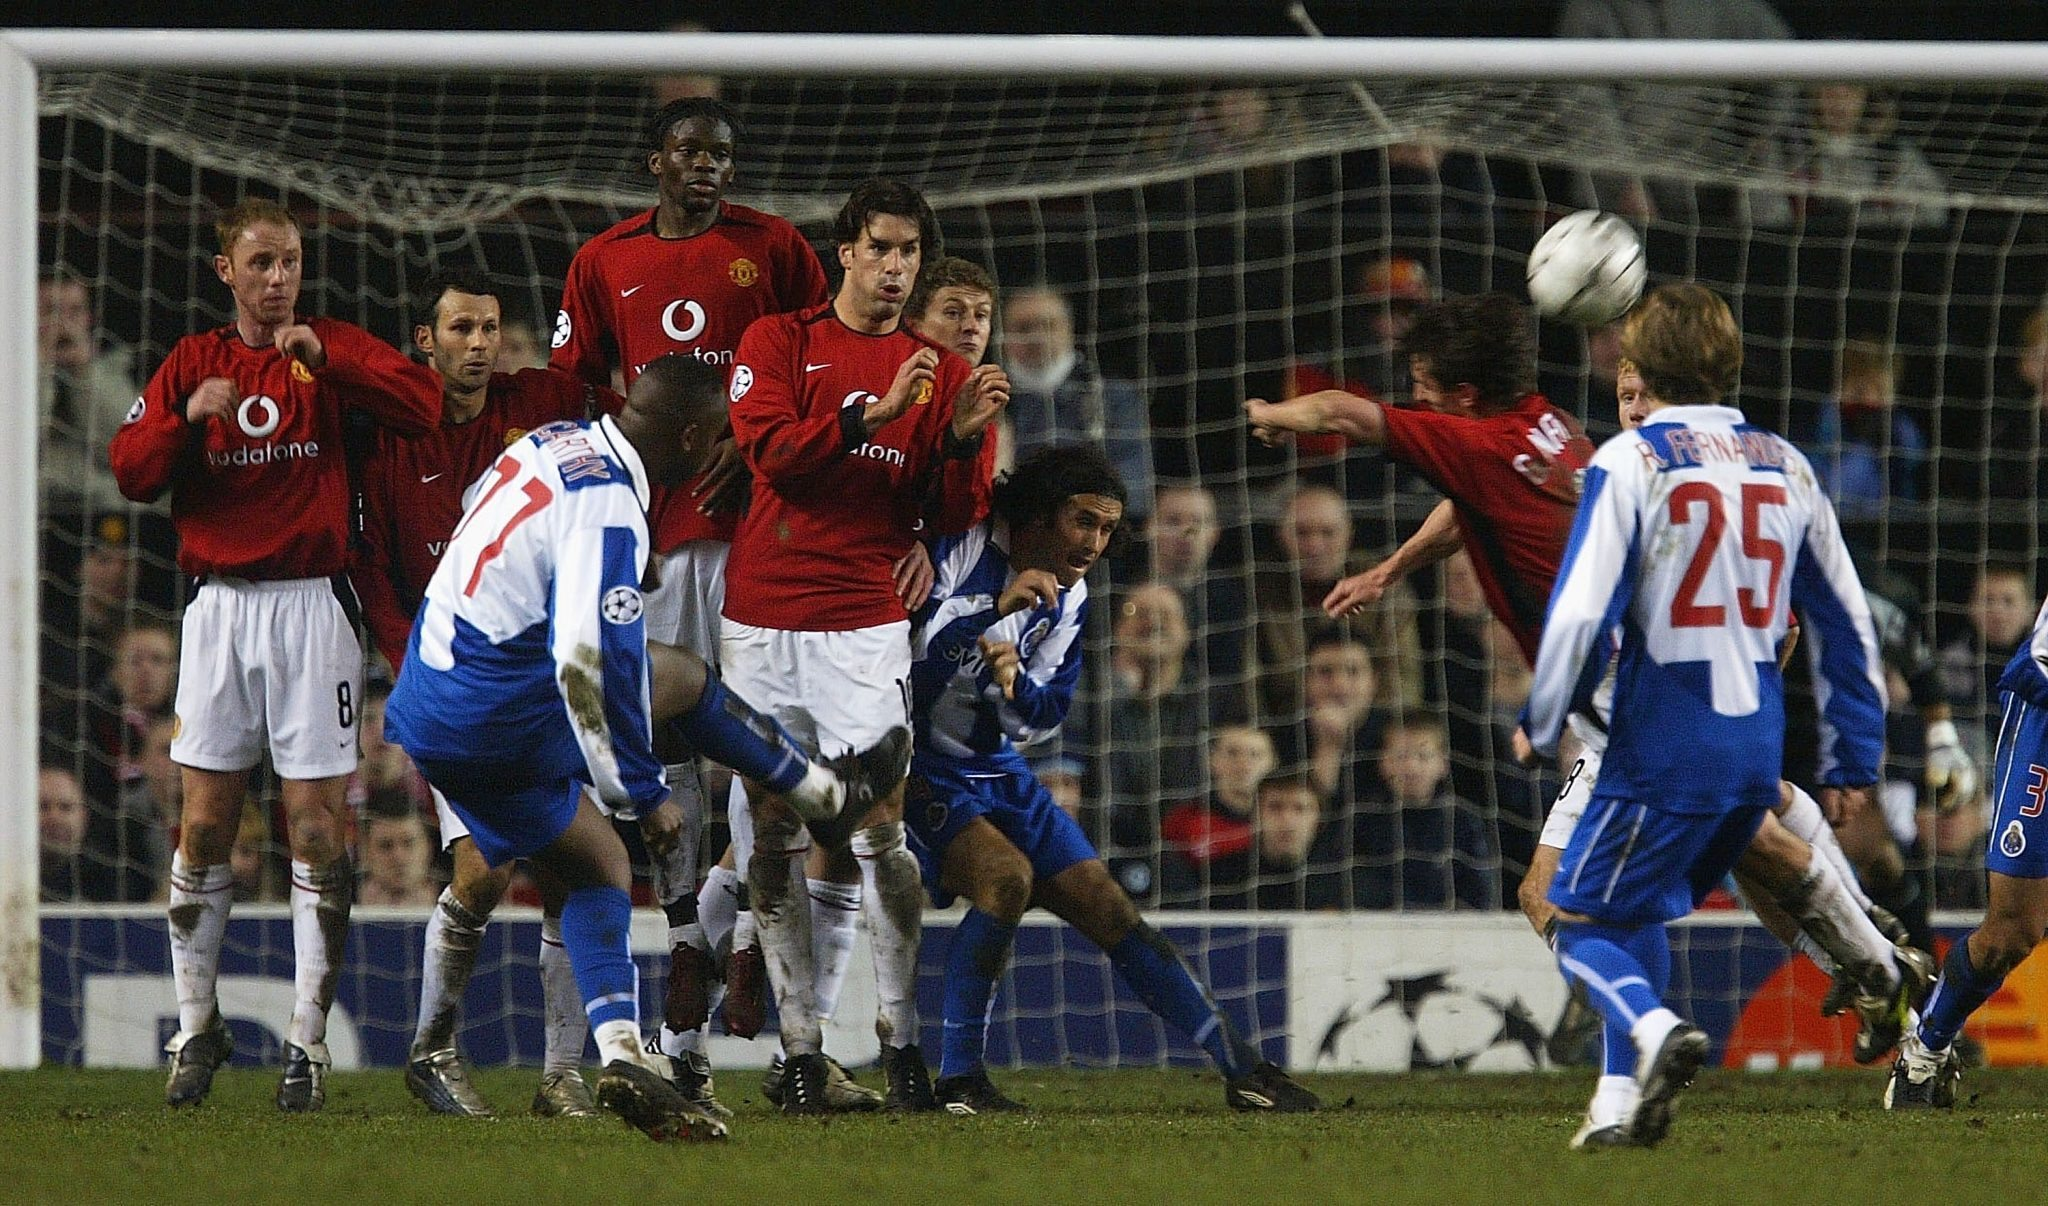 MANCHESTER, ENGLAND - MARCH 9: Benni McCarthy of FC Porto takes a free kick which leads to a goal from team mate Costinha during the UEFA Champions League match between Manchester United and FC Porto at Old Trafford on March 9, 2004 in Manchester, England.  (Photo by Laurence Griffiths/Getty Images) *** Local Caption *** Benni McCarthy